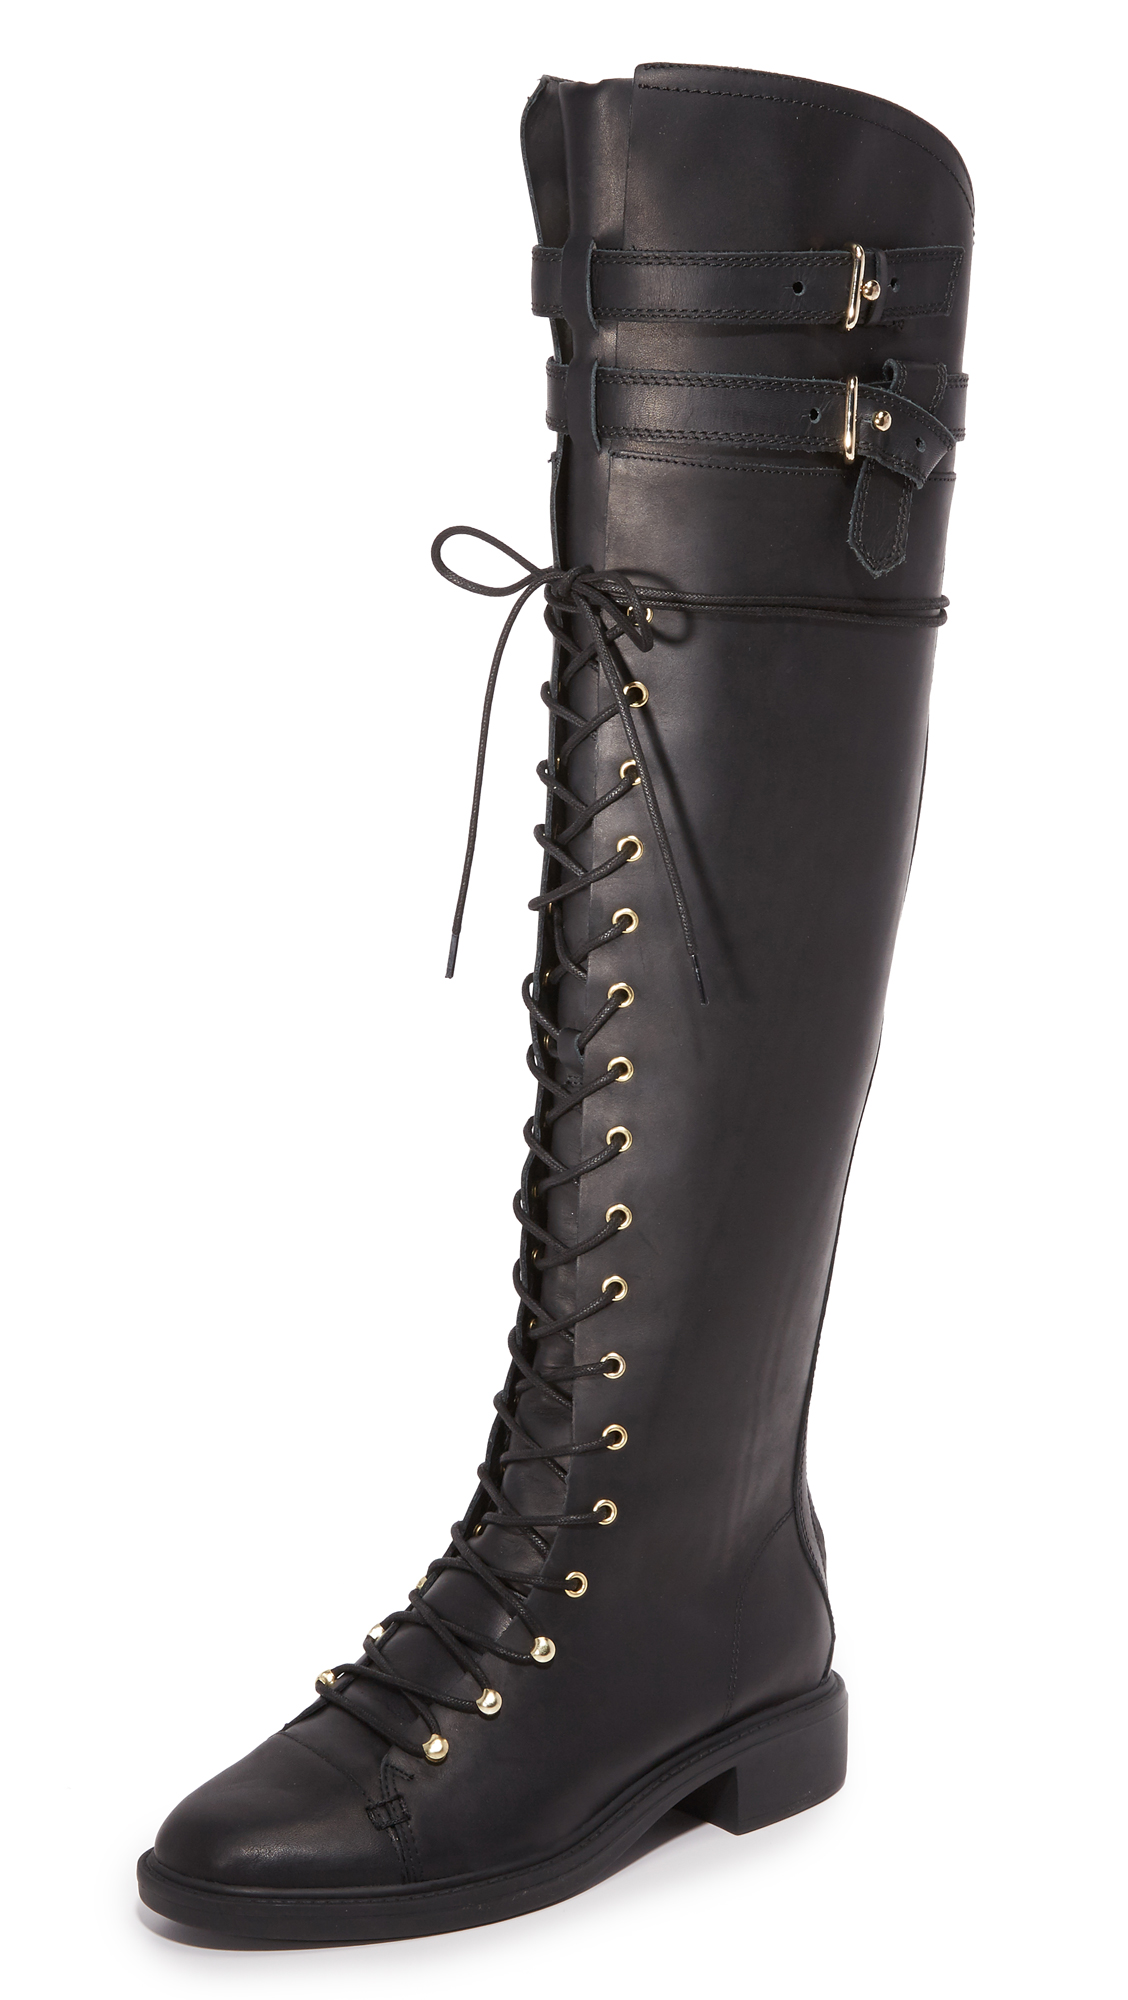 Buckle straps at the top line add an edgy feel to these over the knee Joie combat boots. Lace up closure and hidden back zip. Low heel and rubber sole. Leather: Pigskin. Imported, China. This item